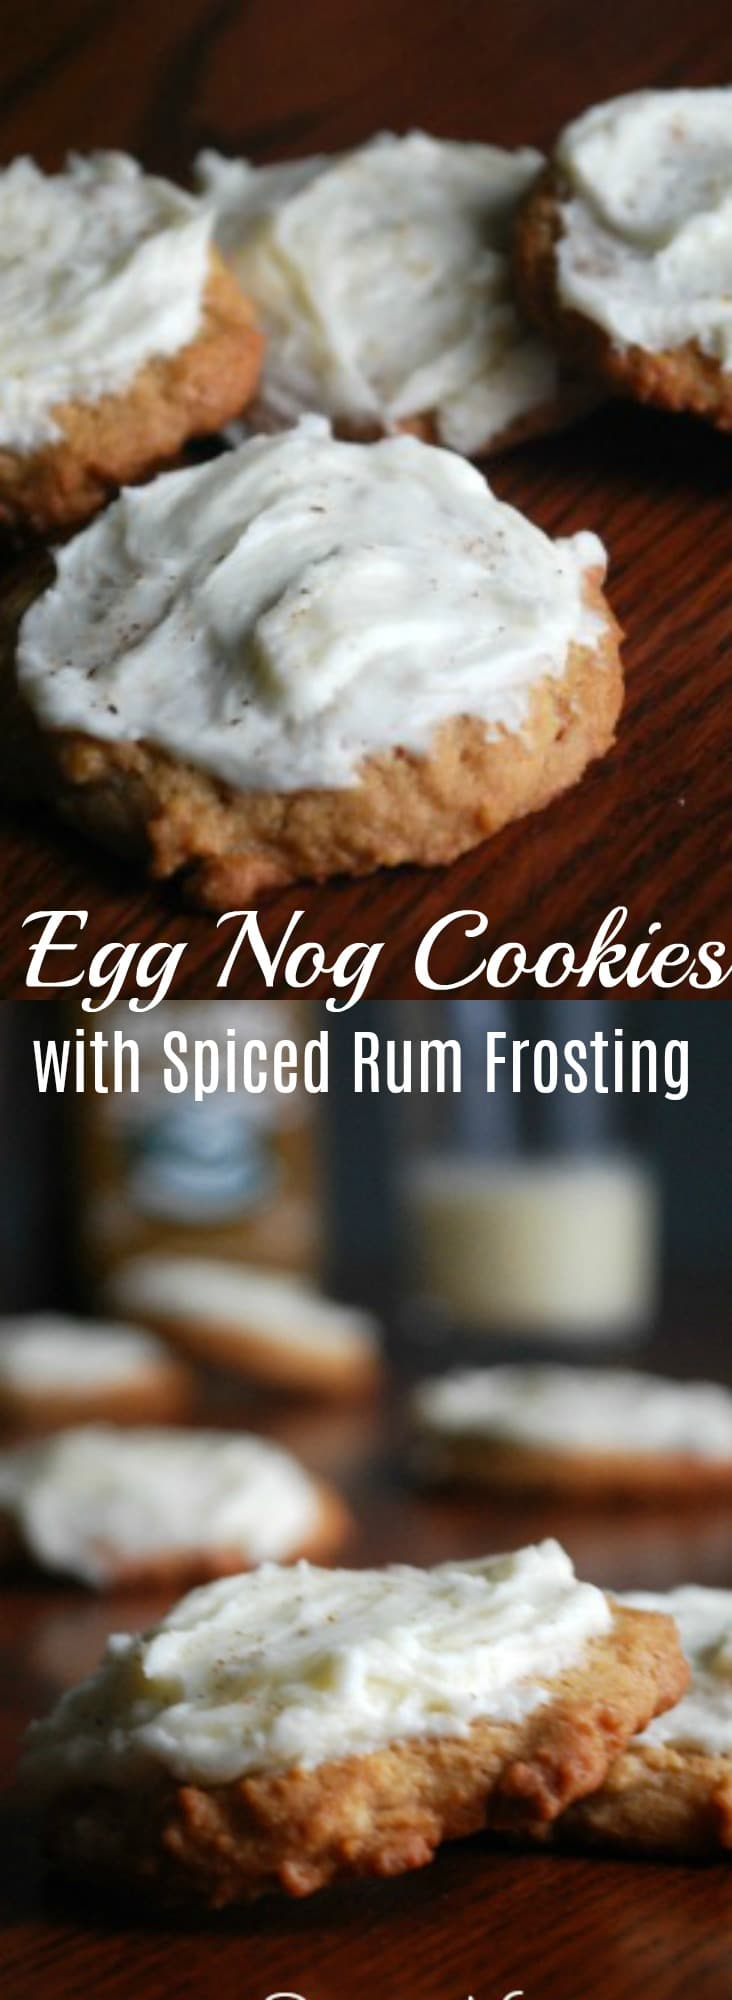 Egg Nog Cookies with Spiced Rum Frosting - These egg nog cookie cookies are delicately soft and chewy and will seriously melt in your mouth with a slightly spiced frosting you could eat with a spoon.  Christmas Cookies, Cookie Recipe, Egg Nog Cookies,